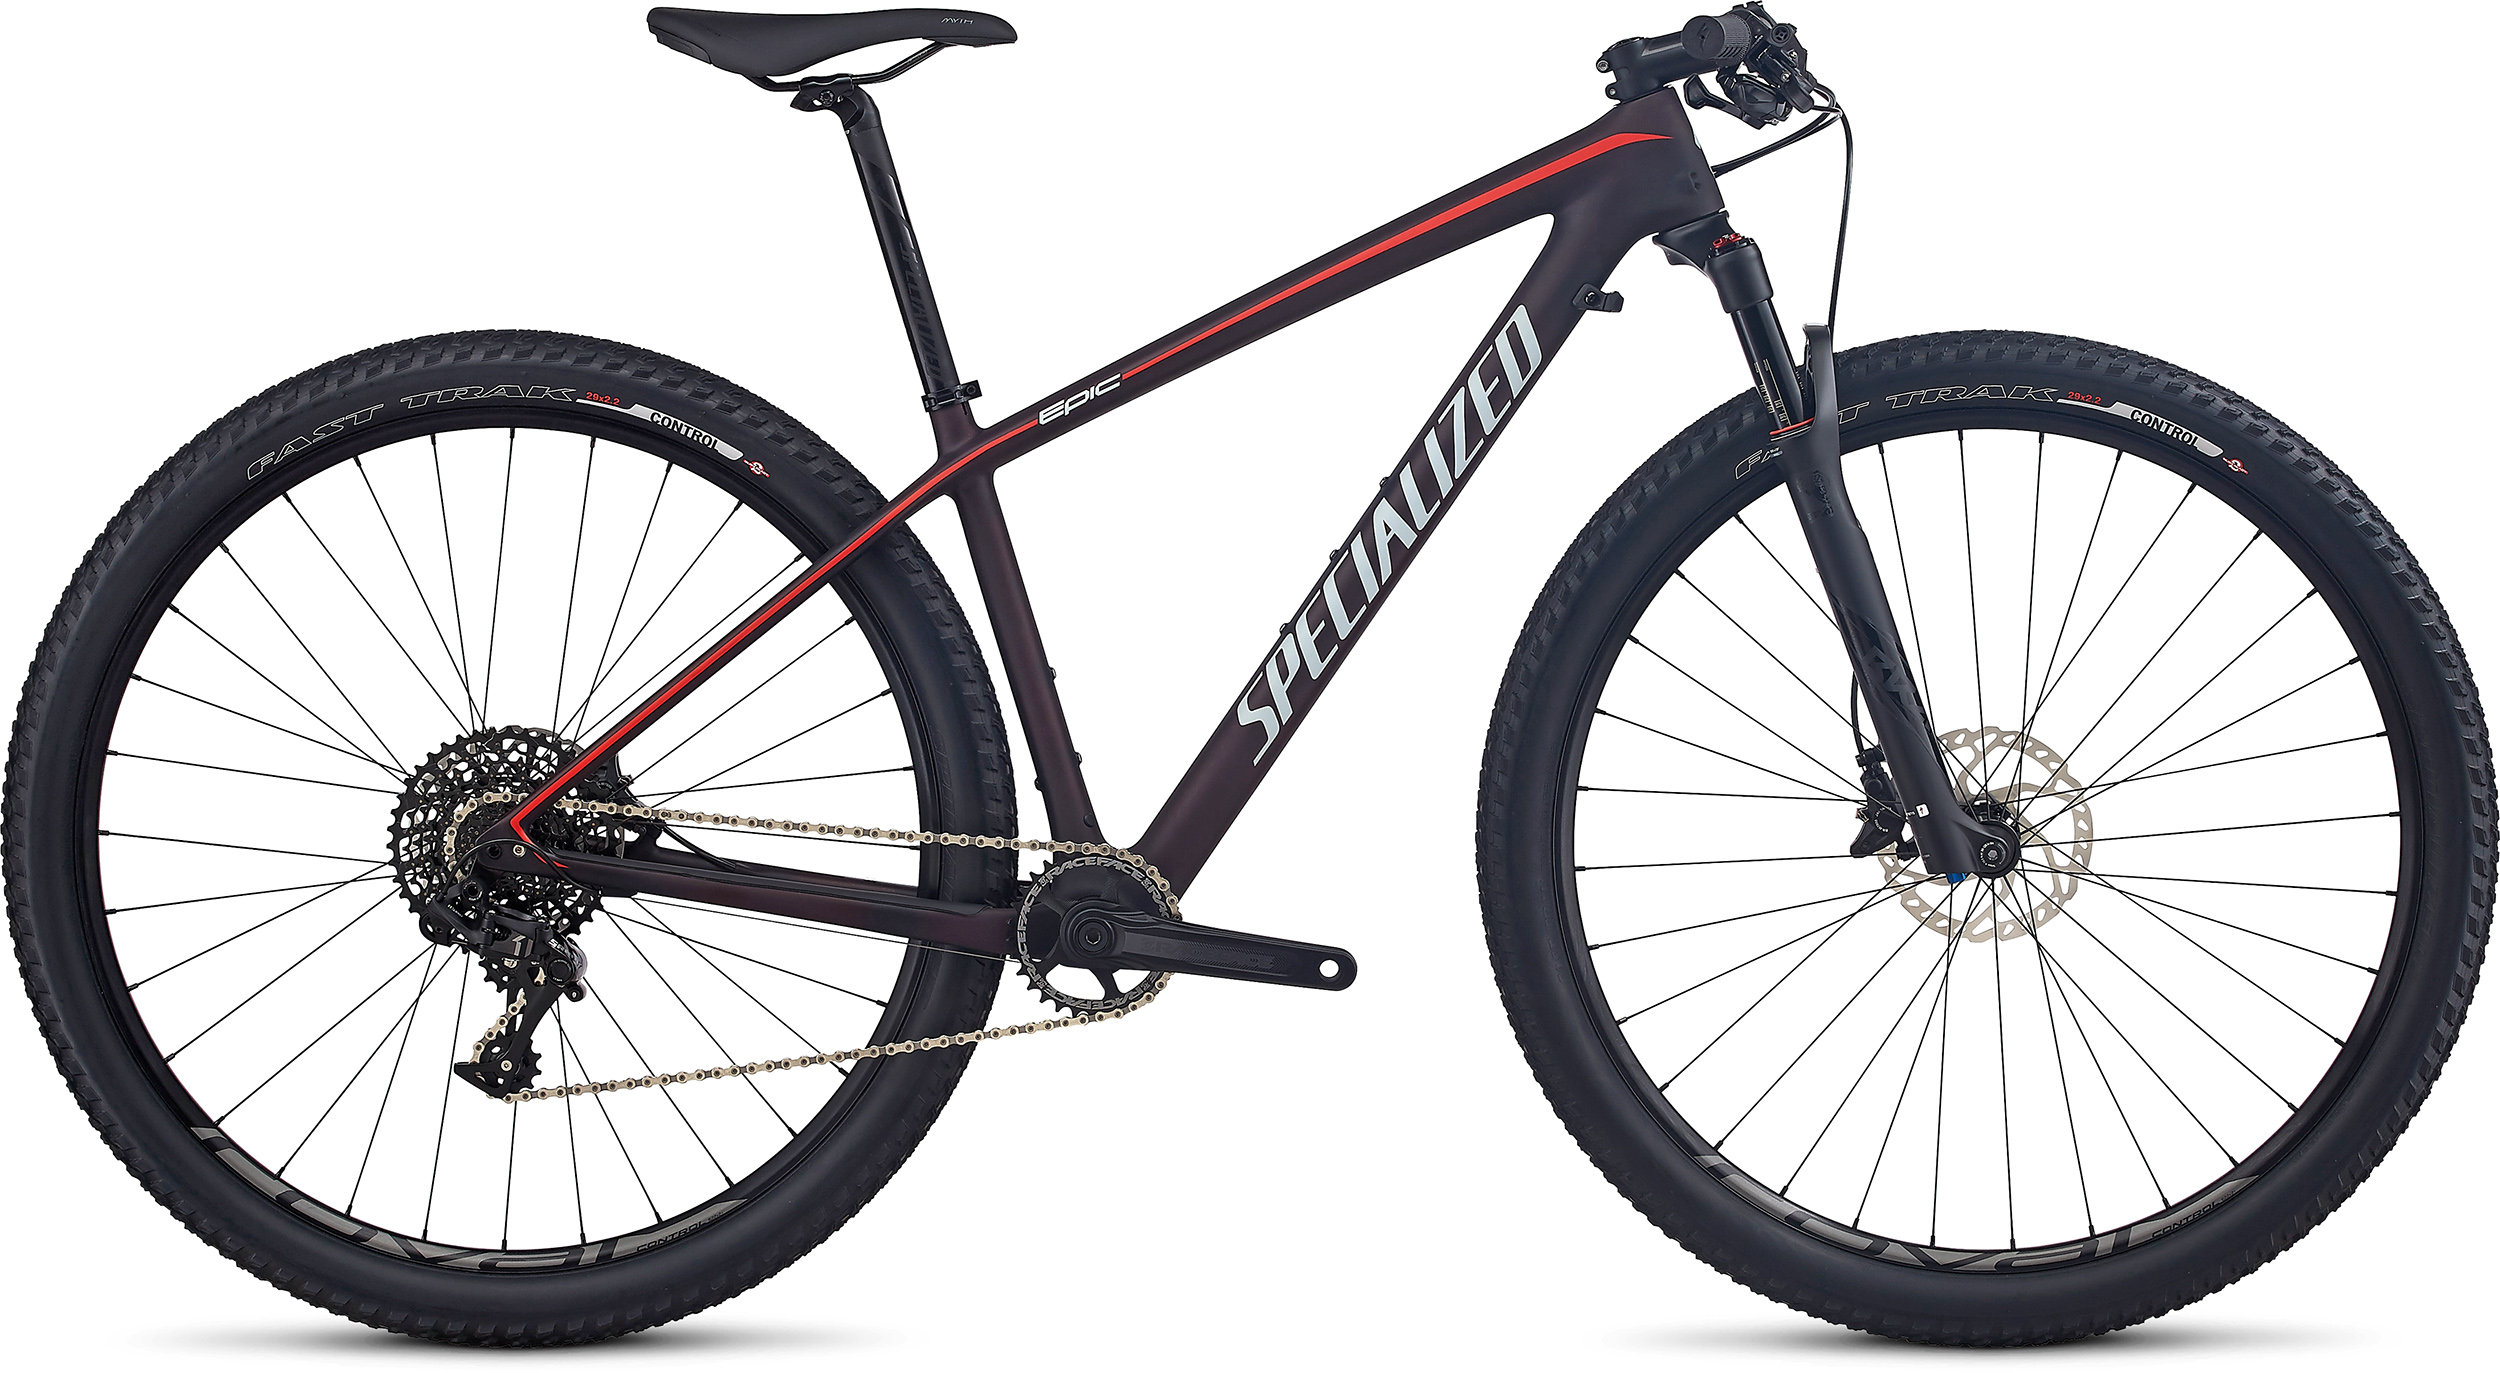 SPECIALIZED EPIC HT WMN EXPERT CARBON WC 29 REDFLKTNT/NRDCRED/BBYBLU M - Alpha Bikes